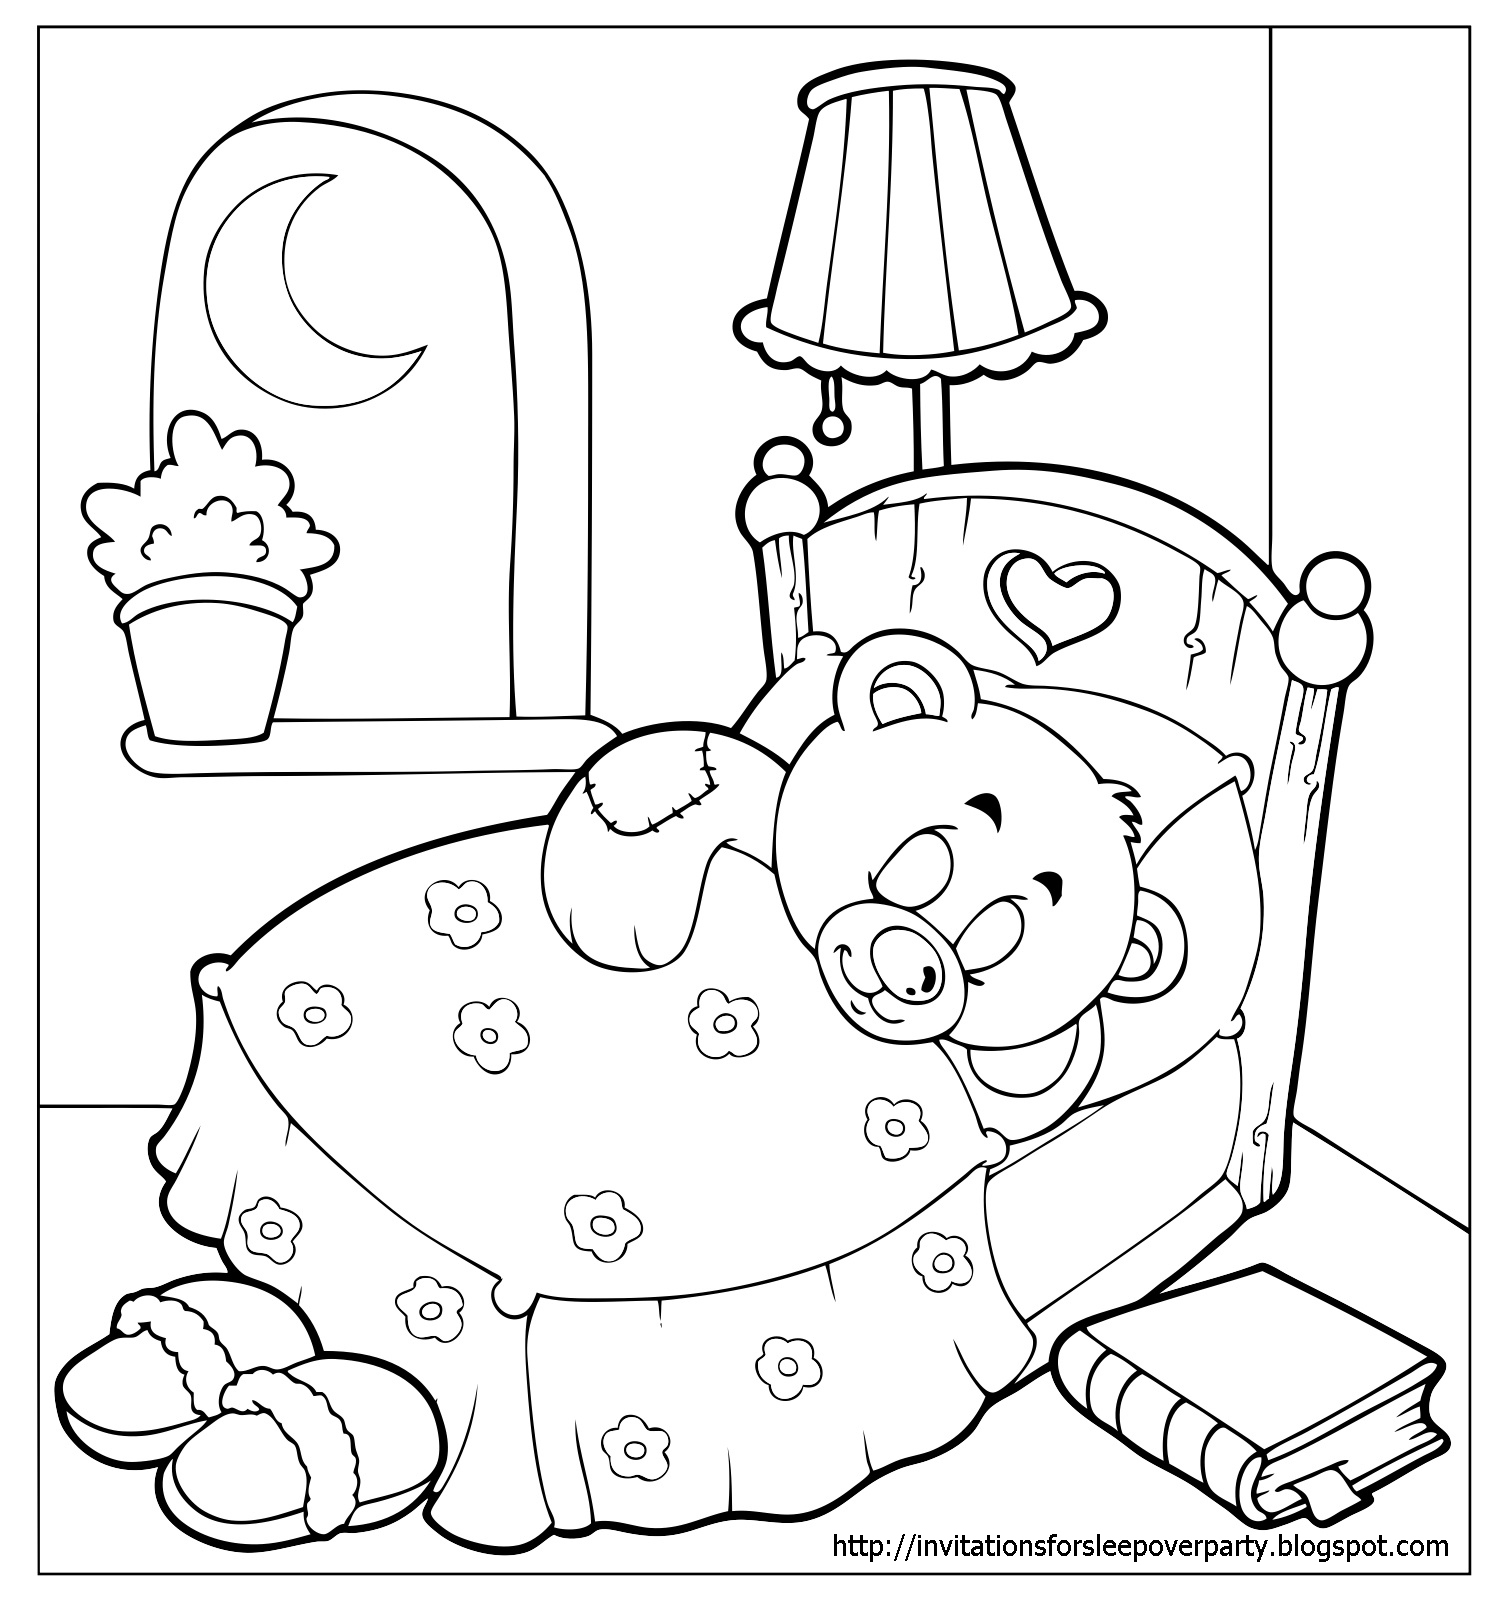 sleepover coloring pages invitations for sleepover party pages coloring sleepover 1 1